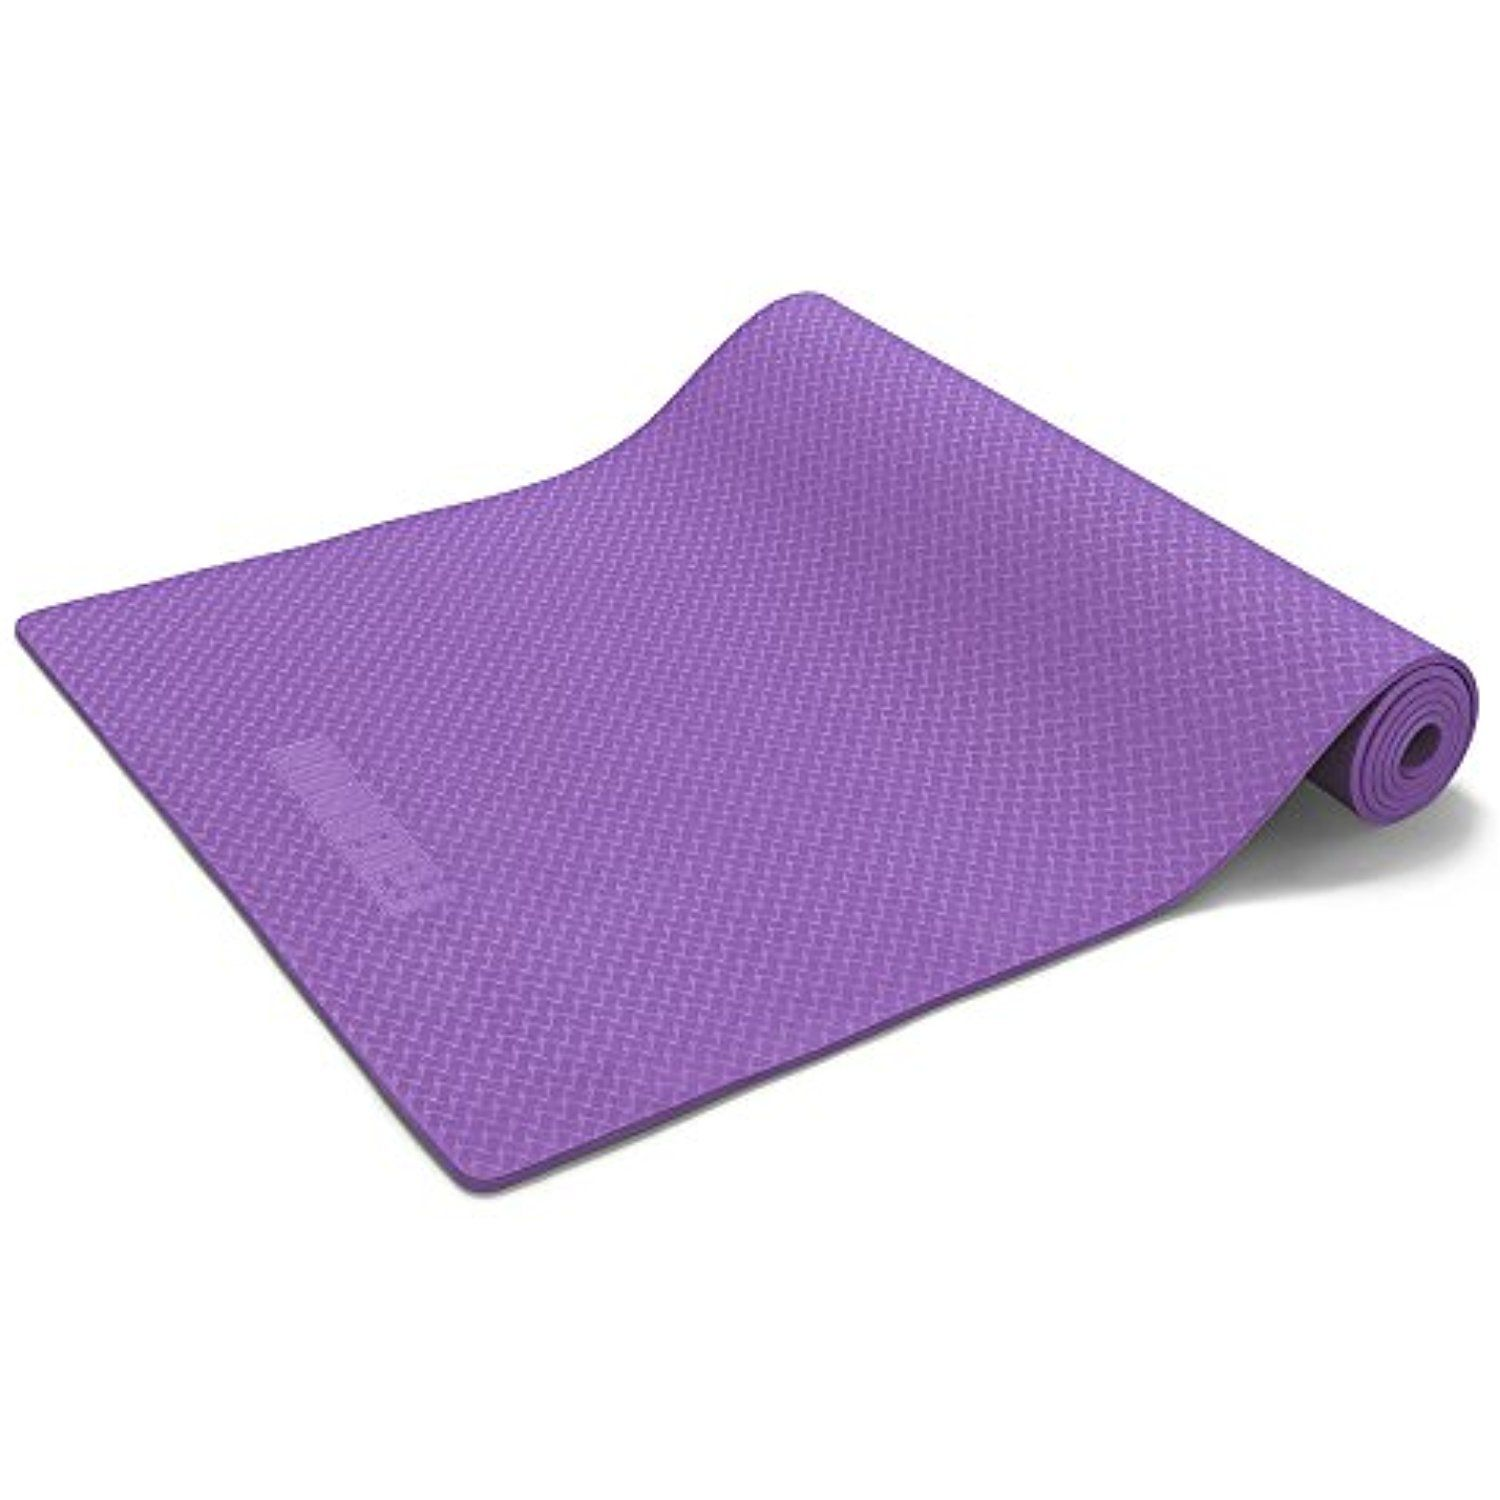 exercise work mats karma itm gym carrier slip fitness bag non mat pilates yoga workout out physio